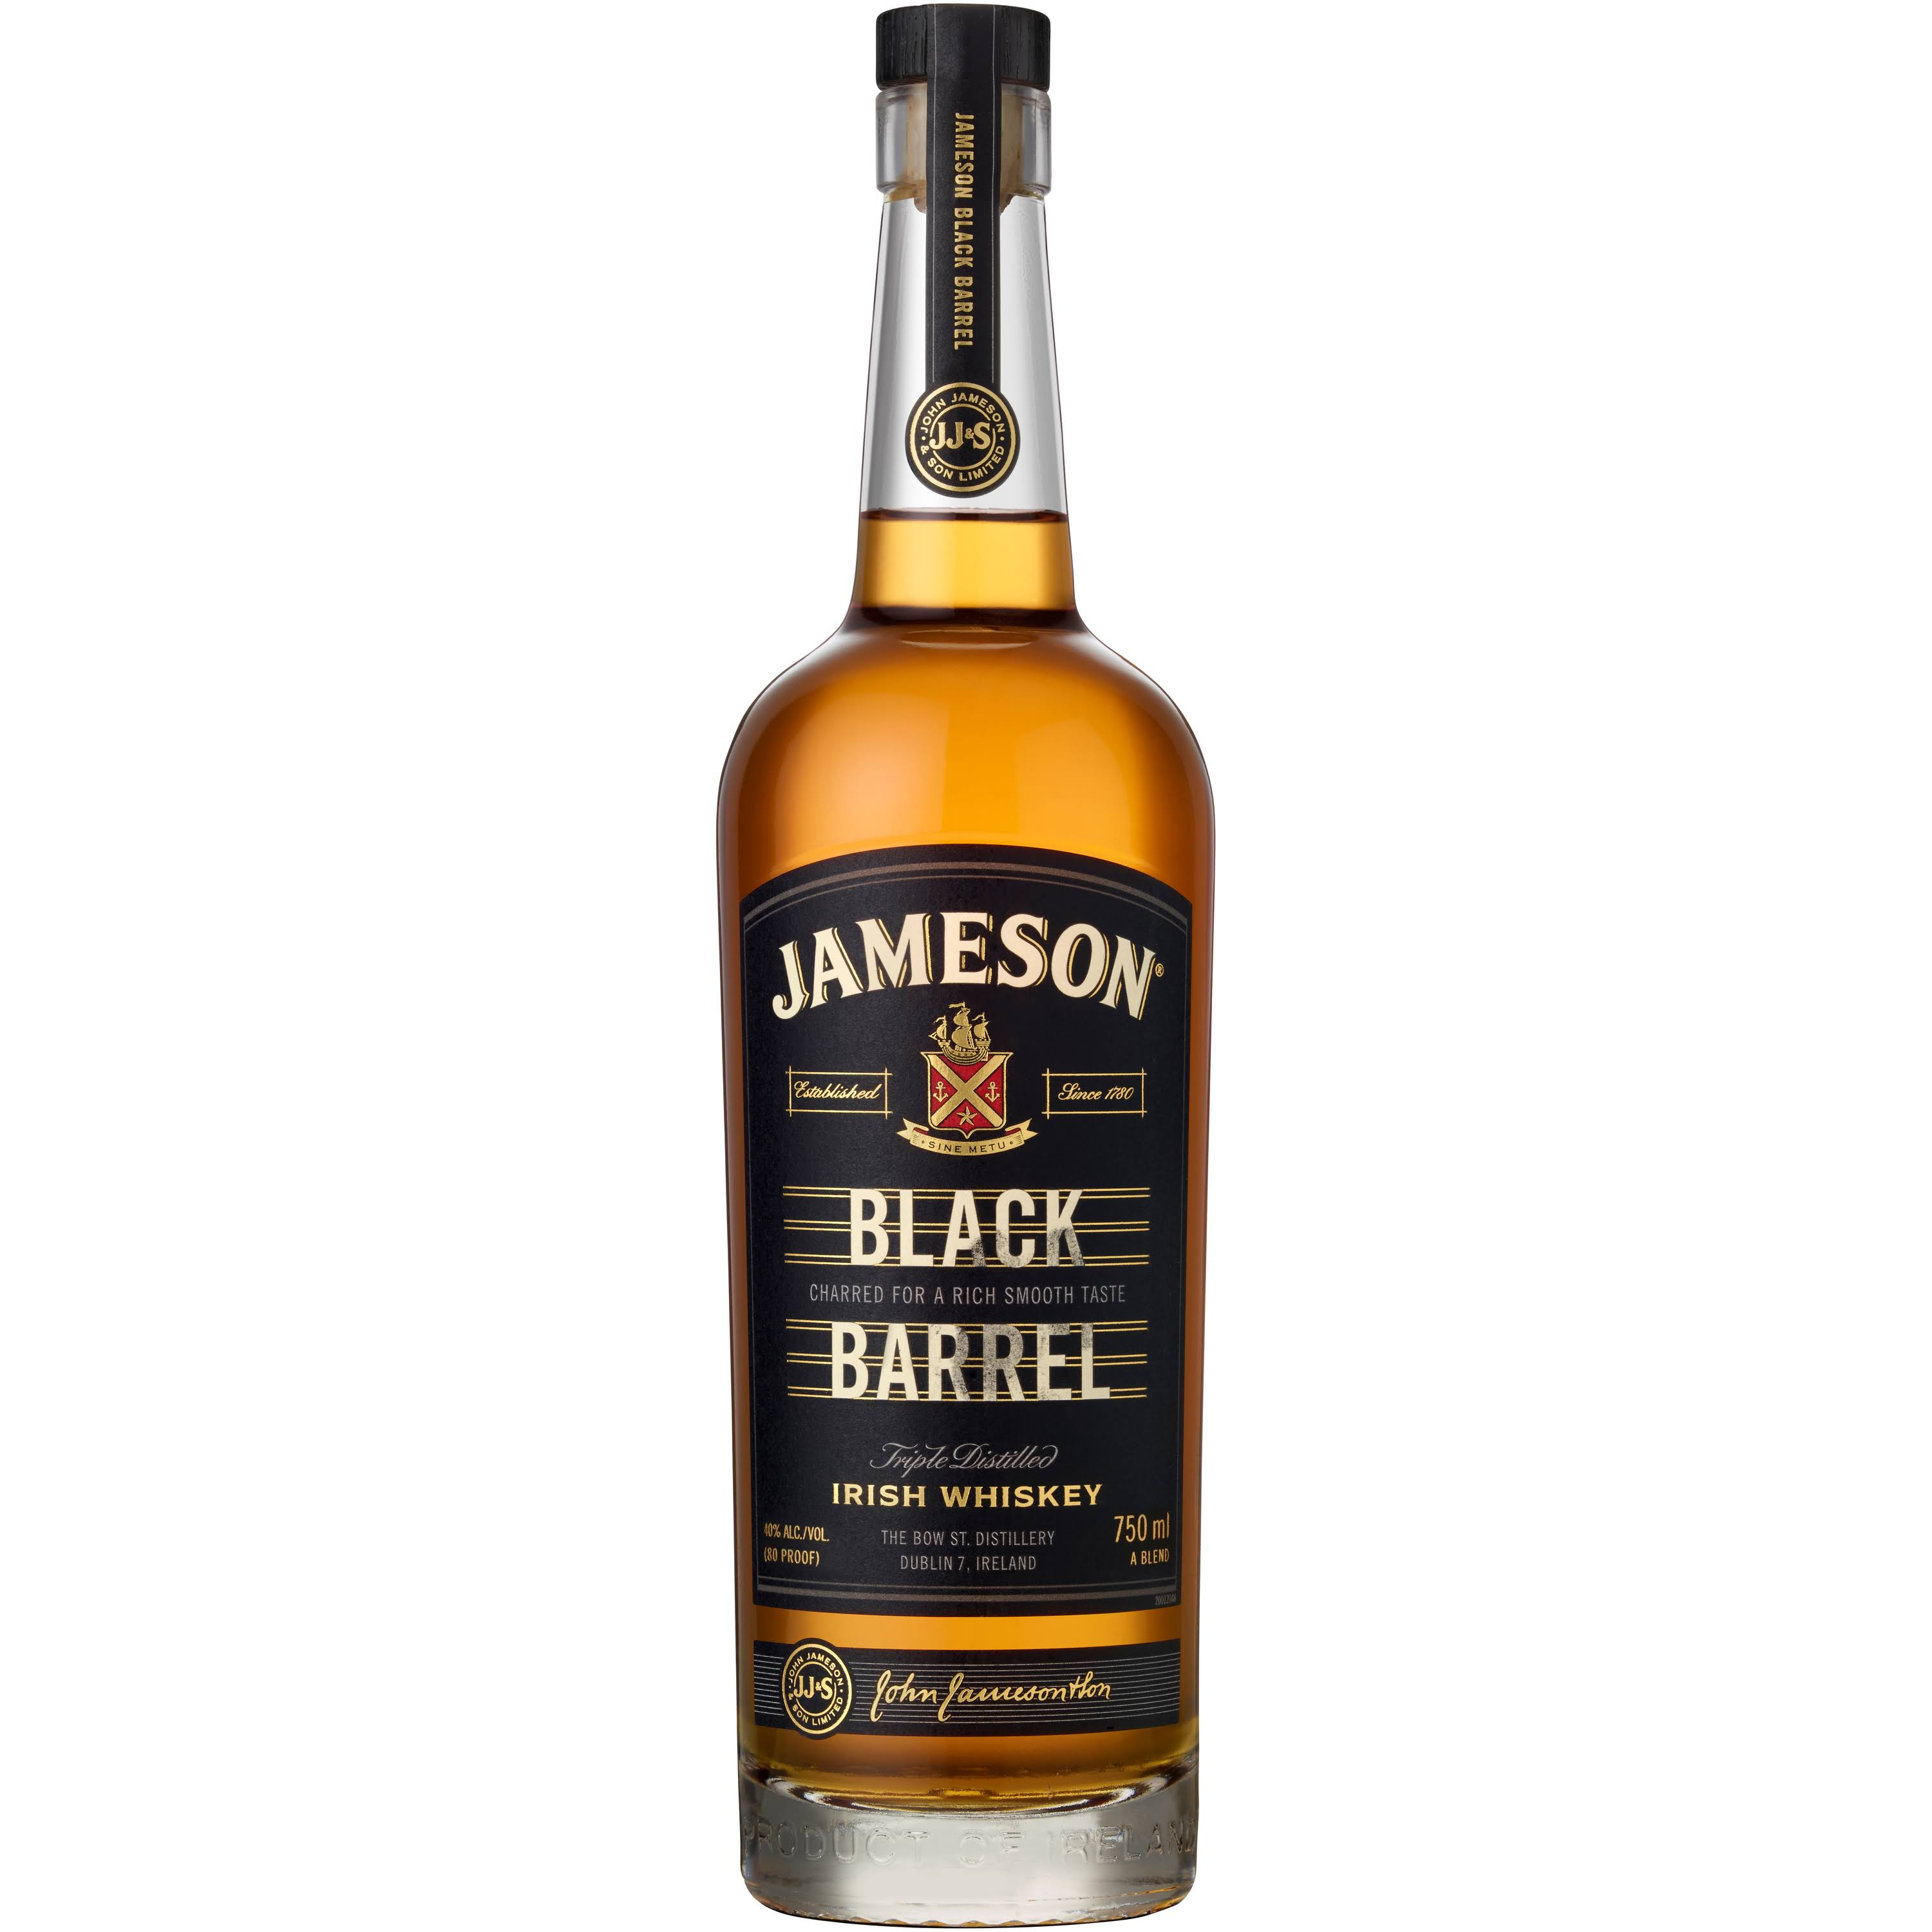 Jameson Black Barrel Irish Whiskey - 750 ml bottle